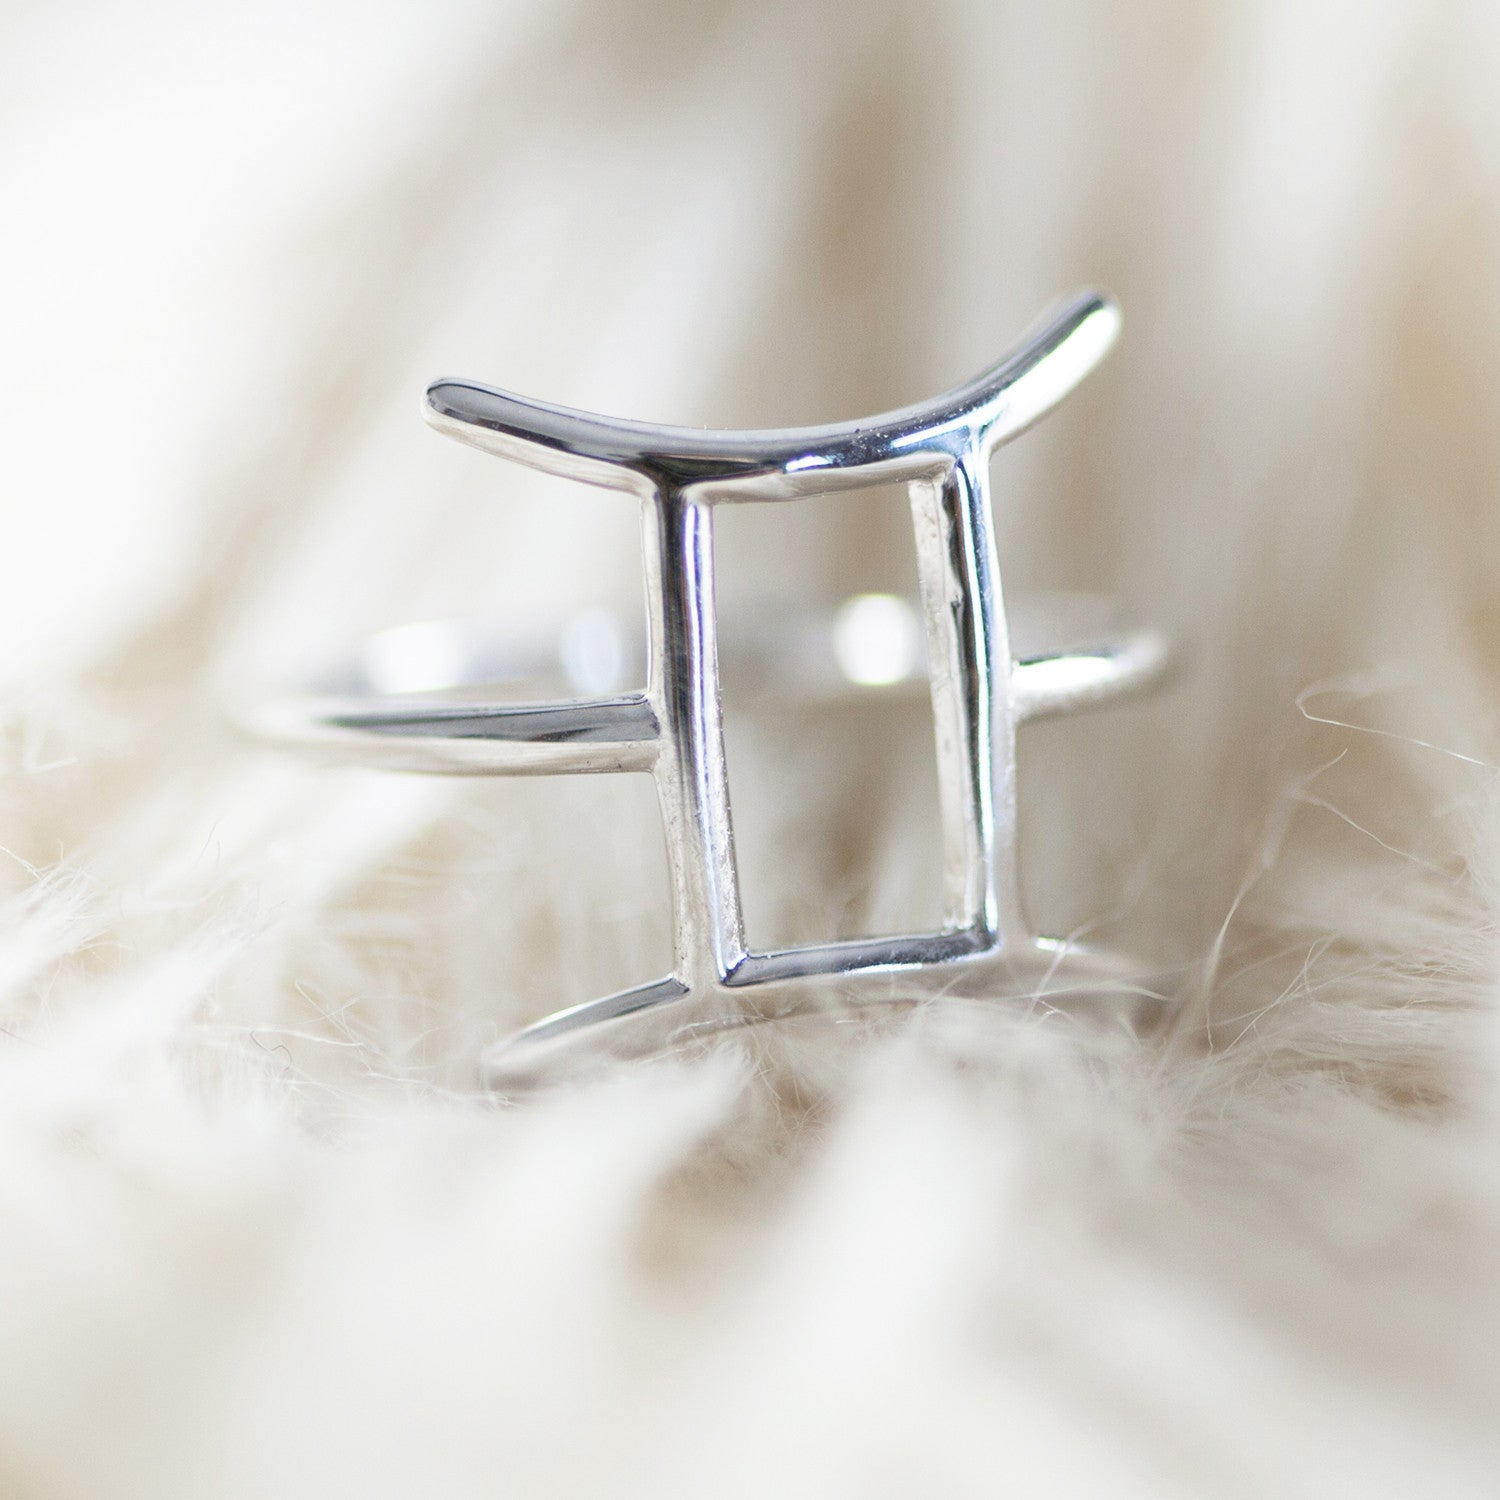 bj kilcollin products ring silver rings linked spinelli gemini